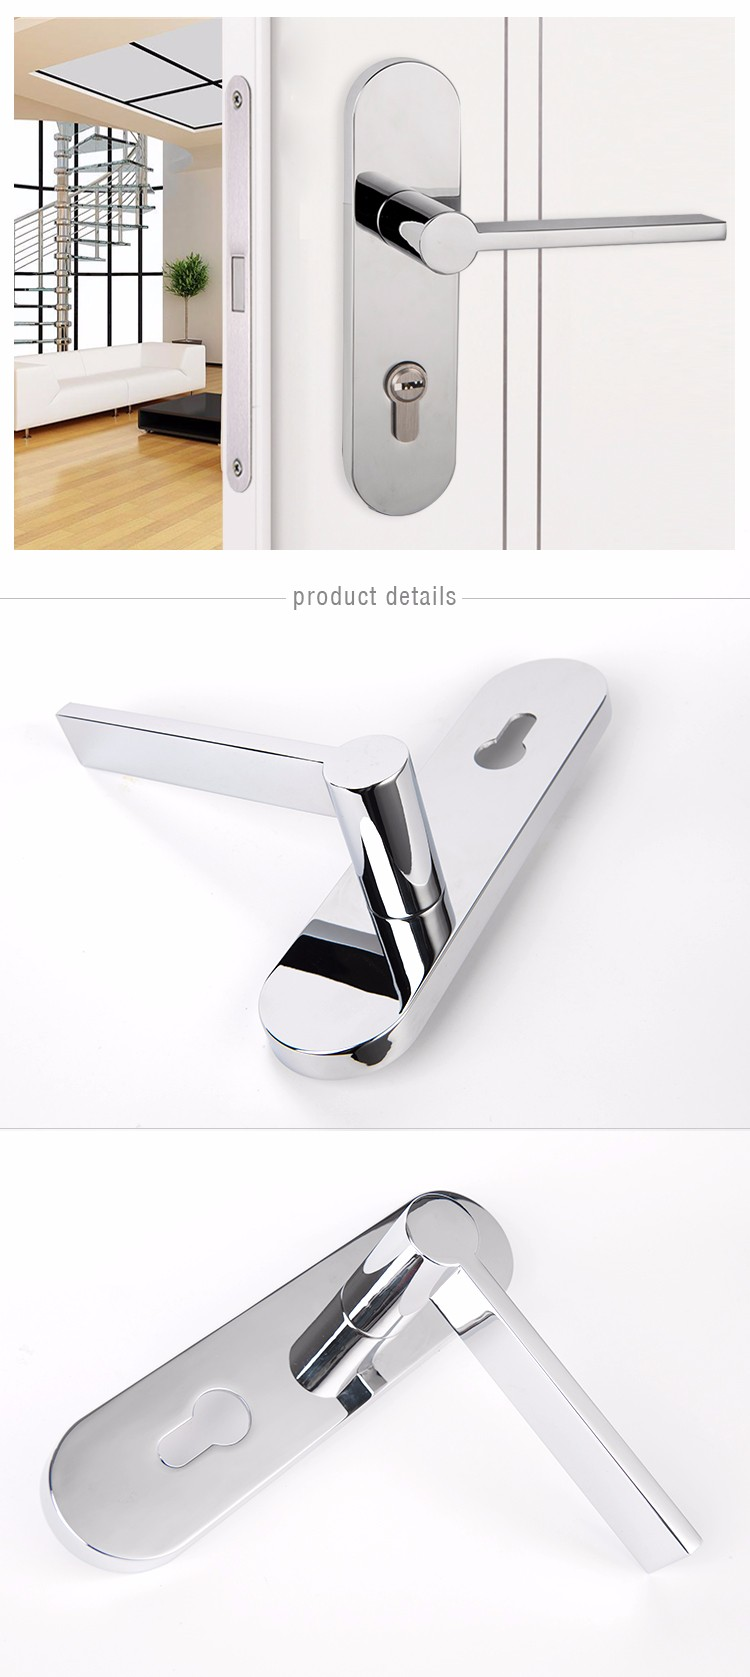 doorknobs interior amazon milocks entry lock touchpad canada indoor dp nickel dkk door electronic keyless satin